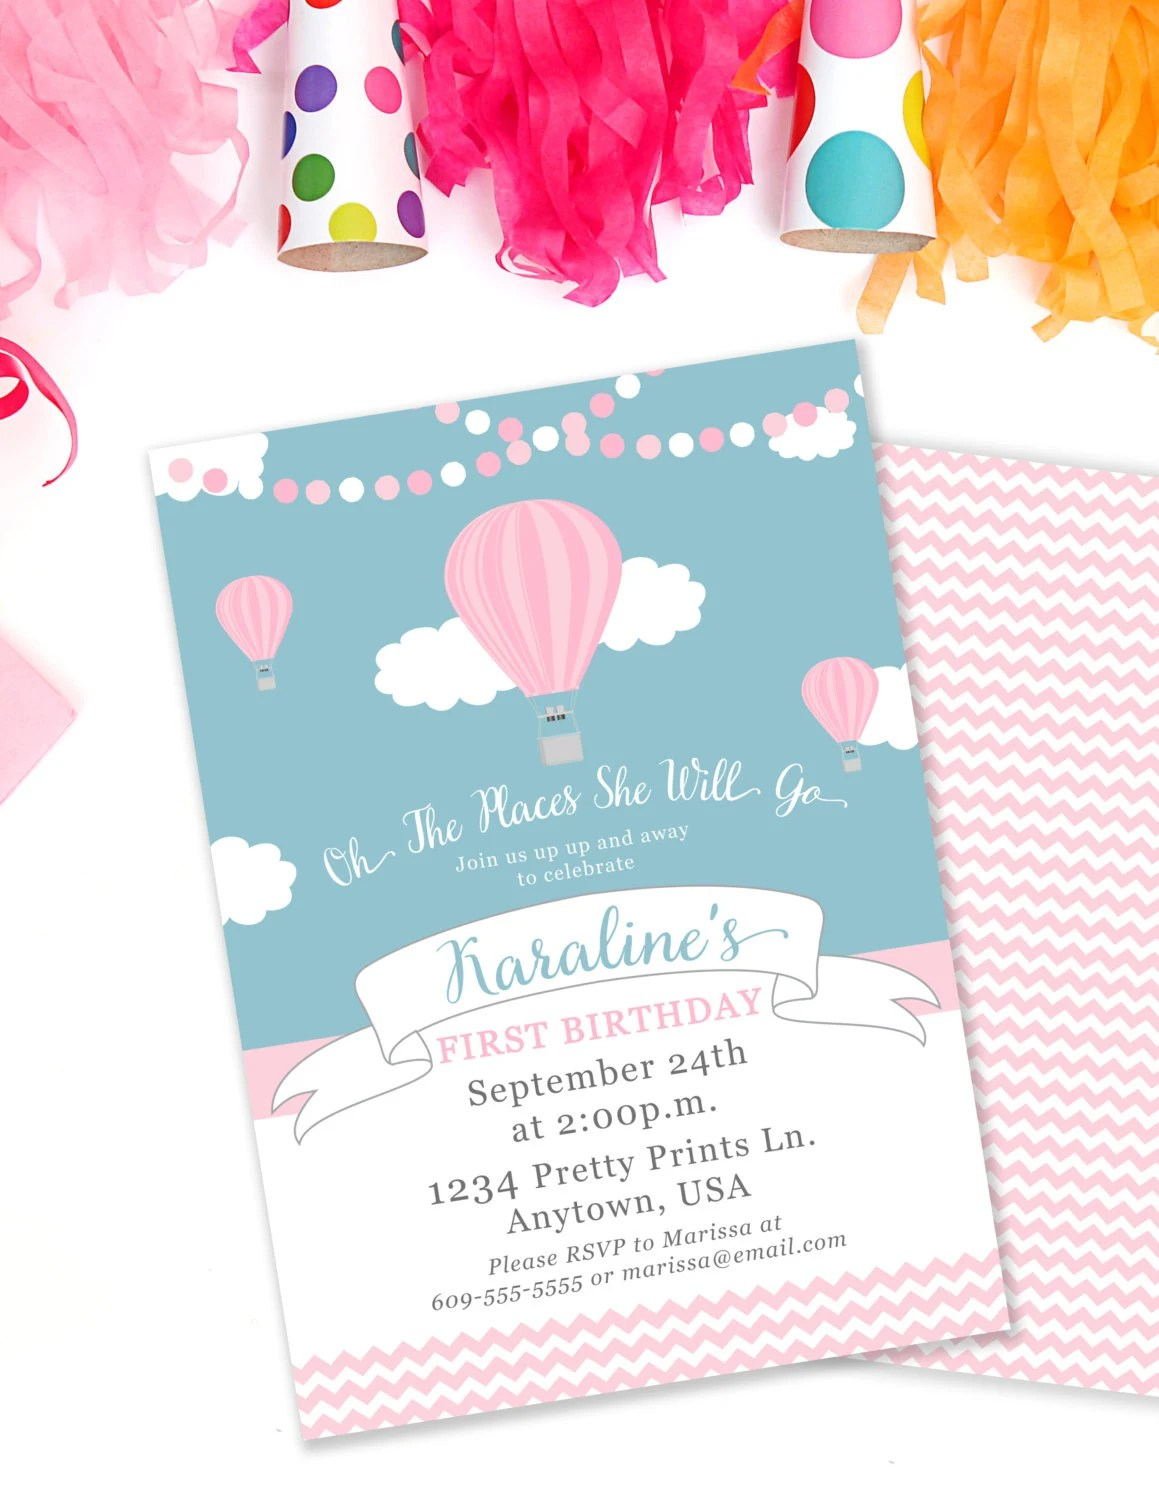 Hot Air Balloon Birthday Invitation, Oh The Places Invite, Up and